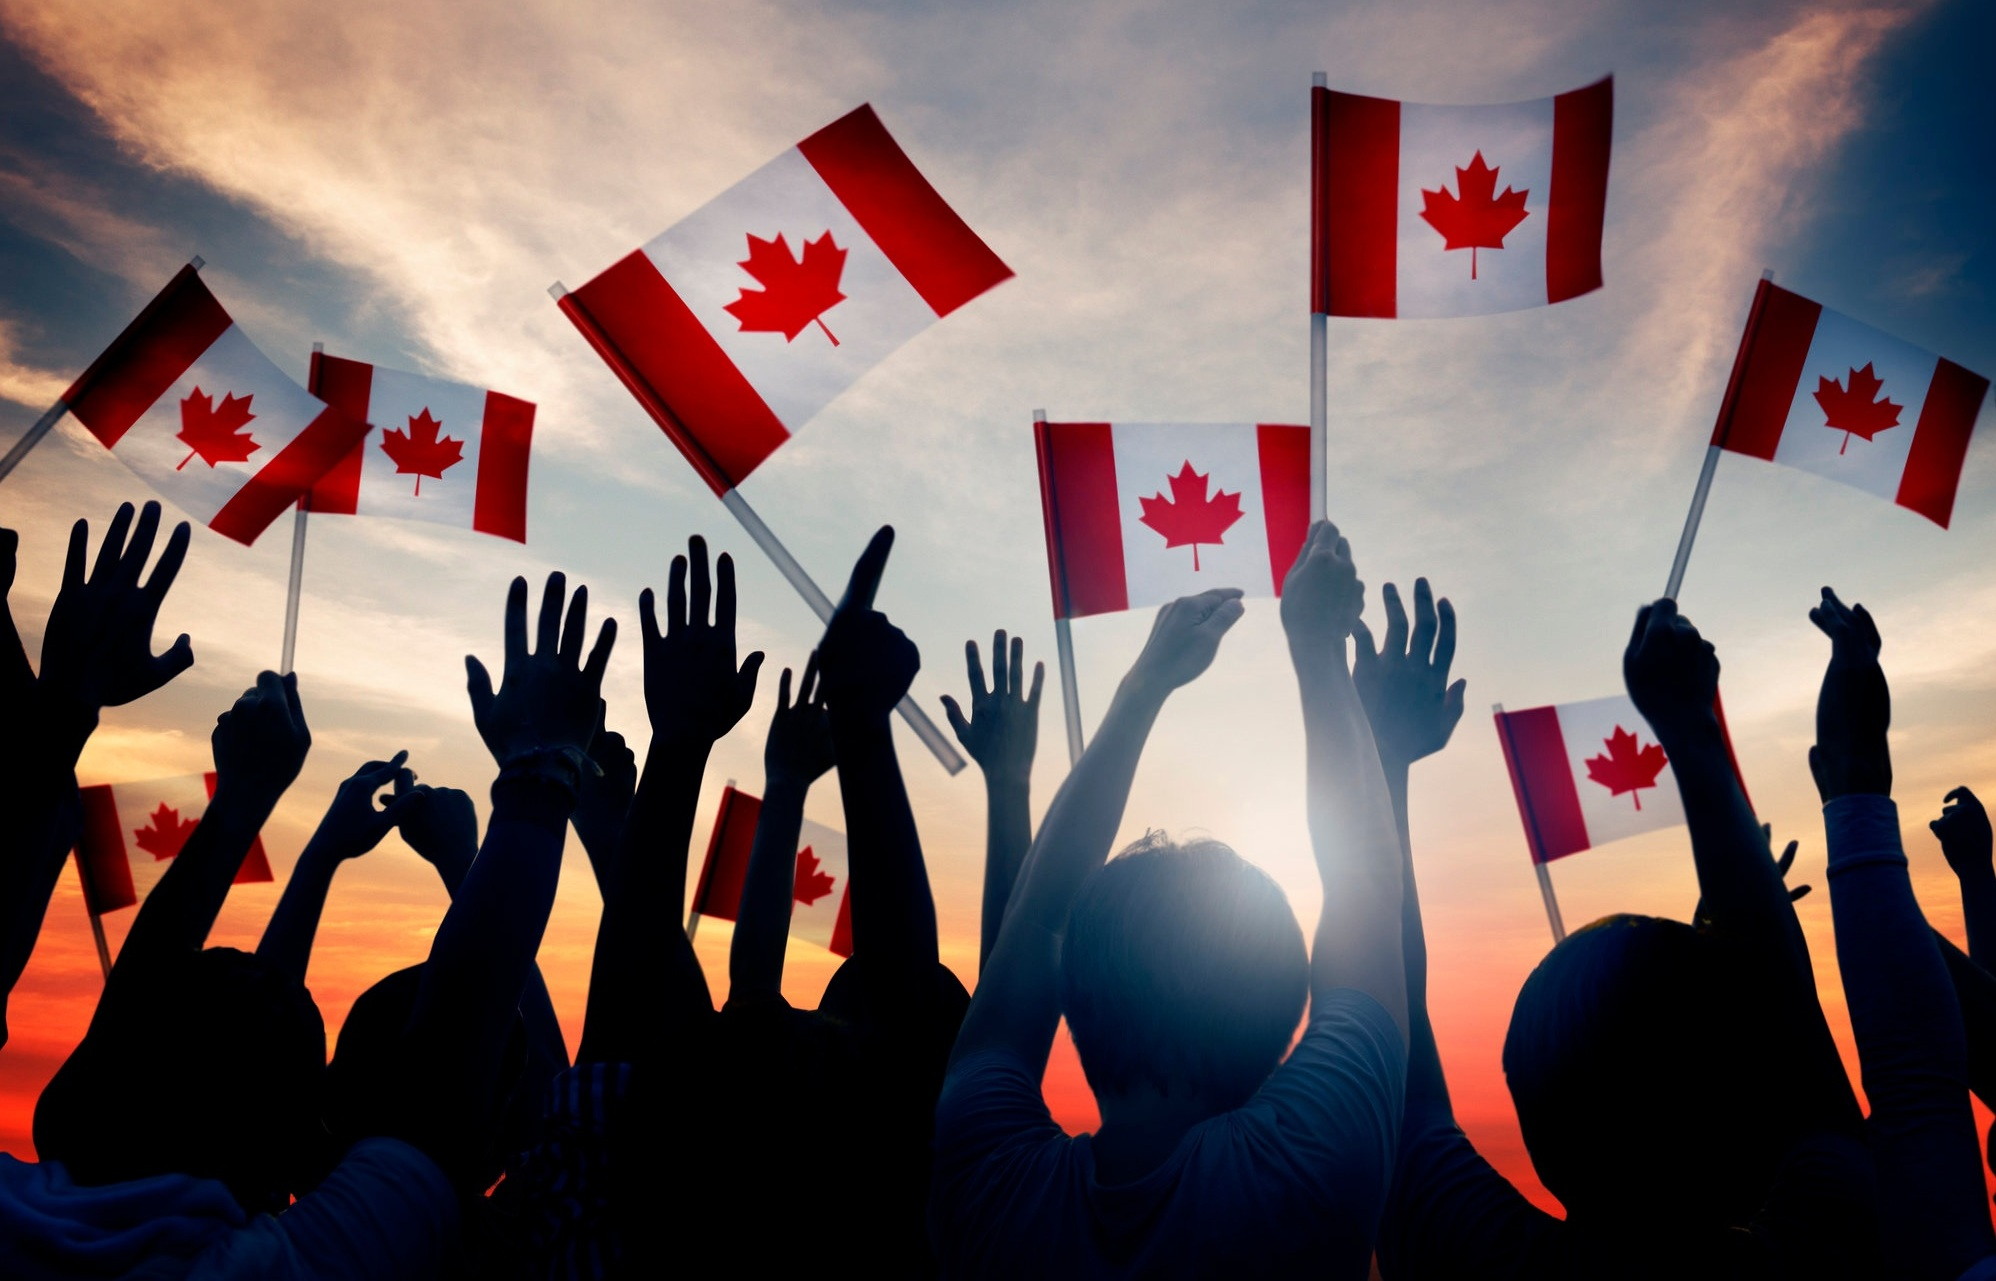 Our Approvals are Extraordinary...   Our entire focus is your Canadian Immigration approval. Our simplified but detailed and professional system will ensure you are feeling confident, always informed and excited knowing we're with you every step of the way.    Free Assessment - Book Now